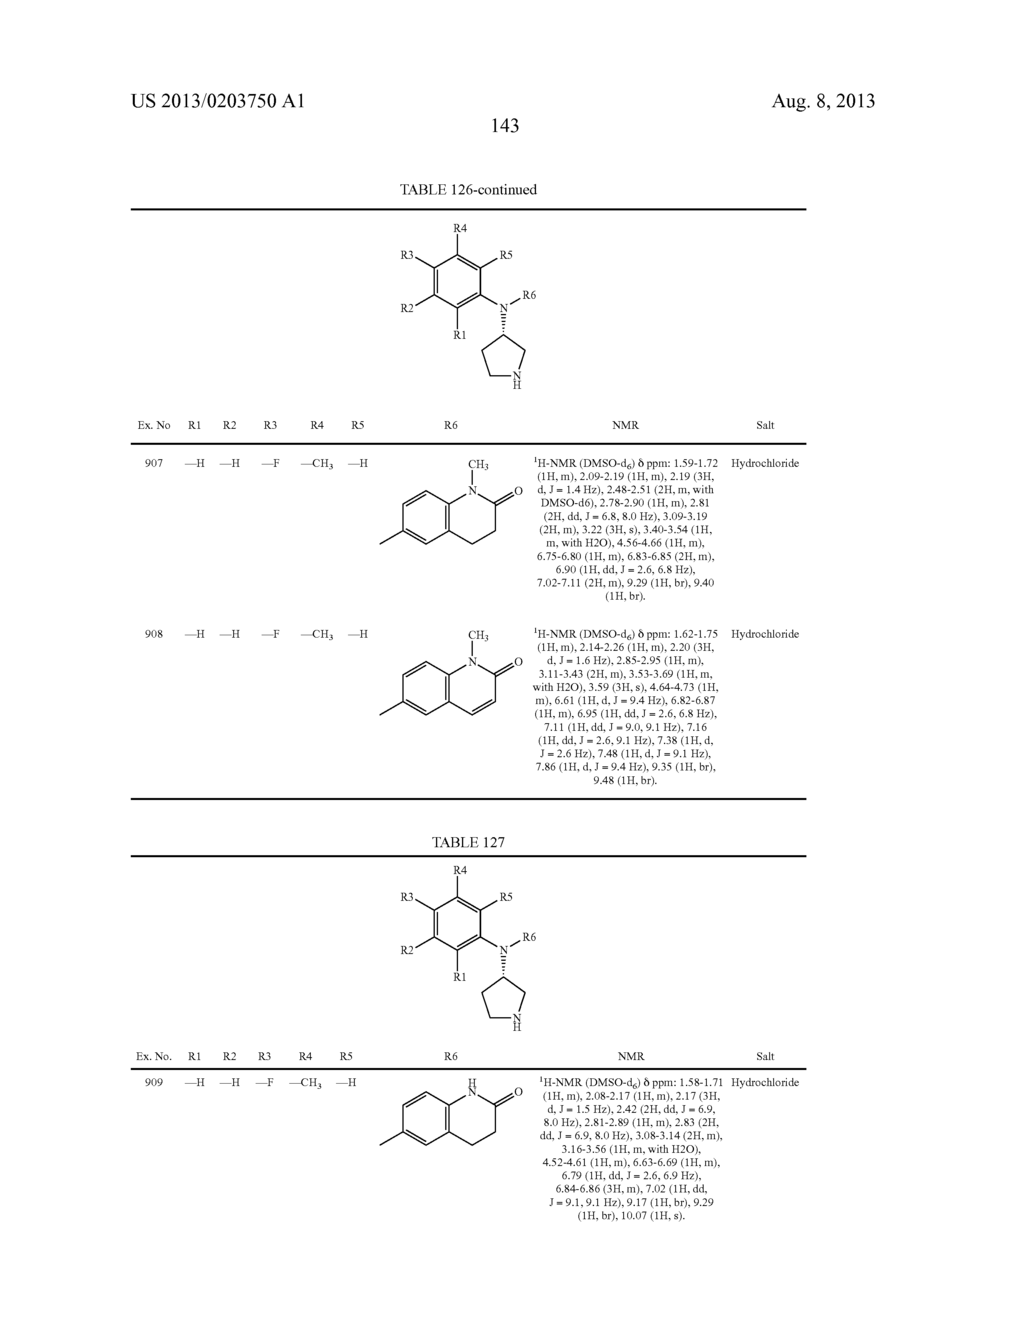 N,N-SUBSTITUTED 3-AMINOPYRROLIDINE COMPOUNDS USEFUL AS MONOAMINES REUPTAKE     INHIBITORS - diagram, schematic, and image 144